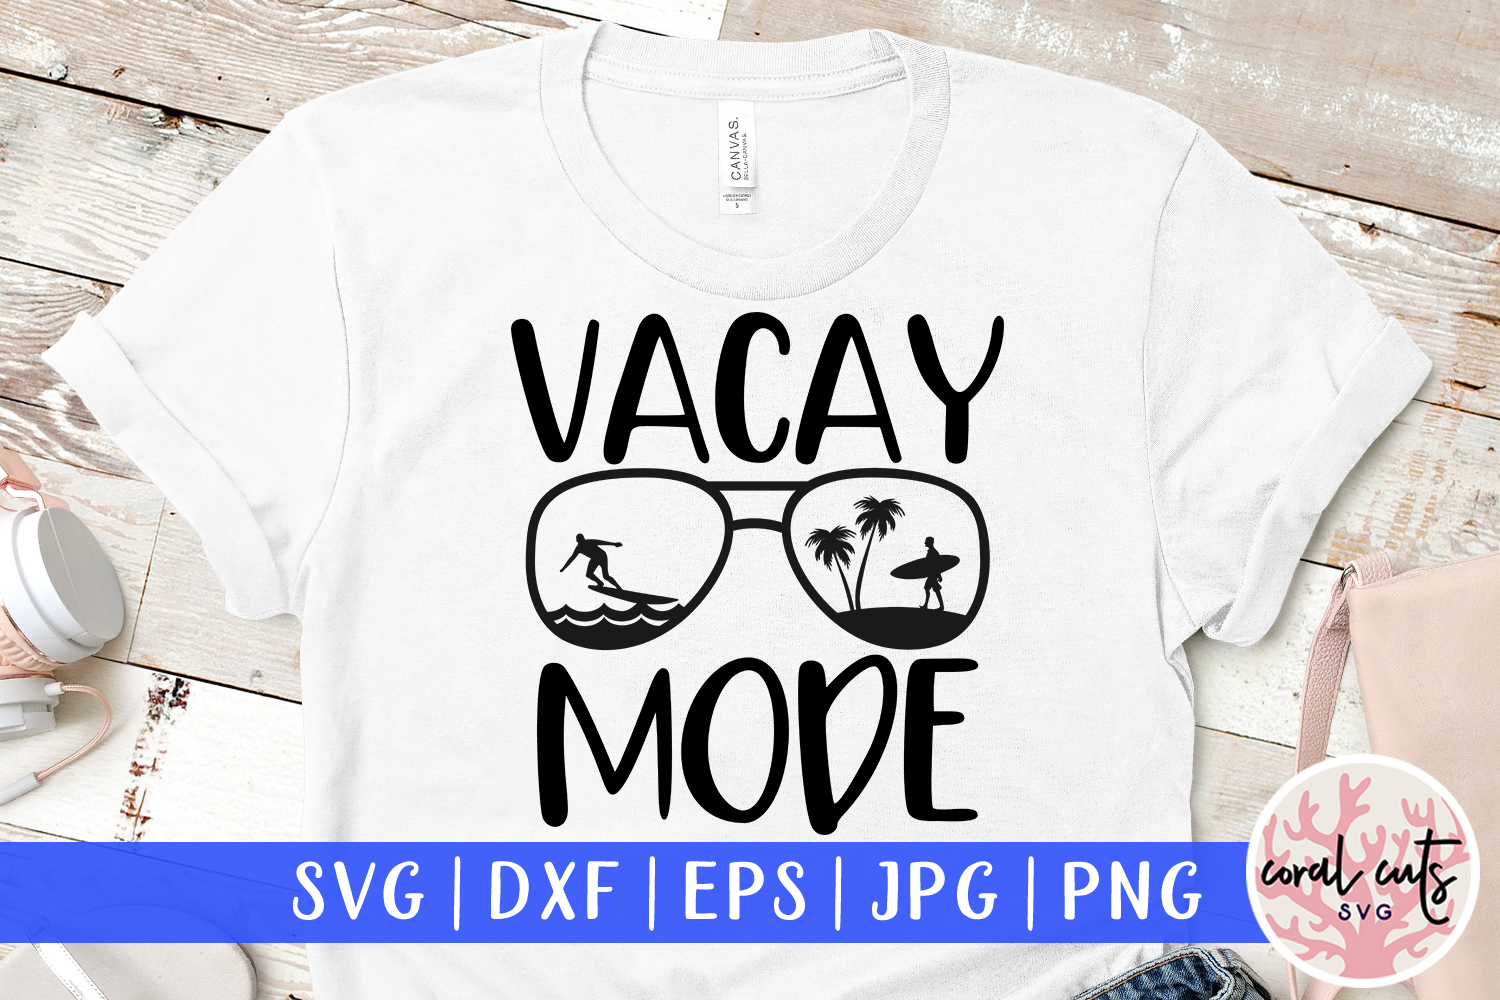 Download Free Vacay Mode Cut File Graphic By Coralcutssvg Creative Fabrica for Cricut Explore, Silhouette and other cutting machines.